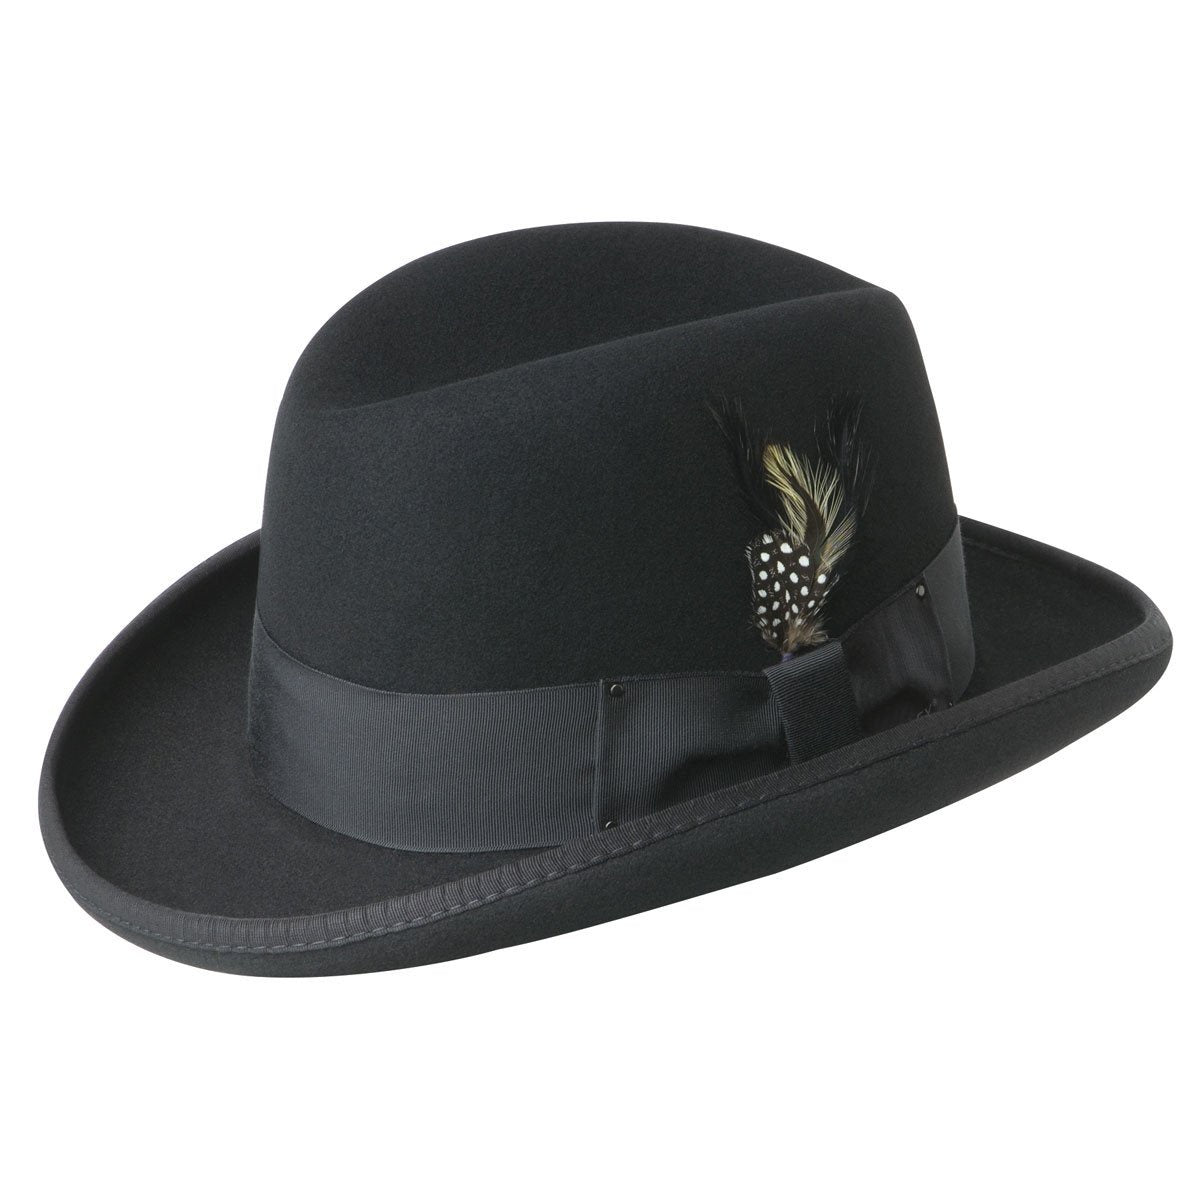 Bailey `Godfather` Homburg Crown Wool Felt - Black Hat - Dapperfam.com